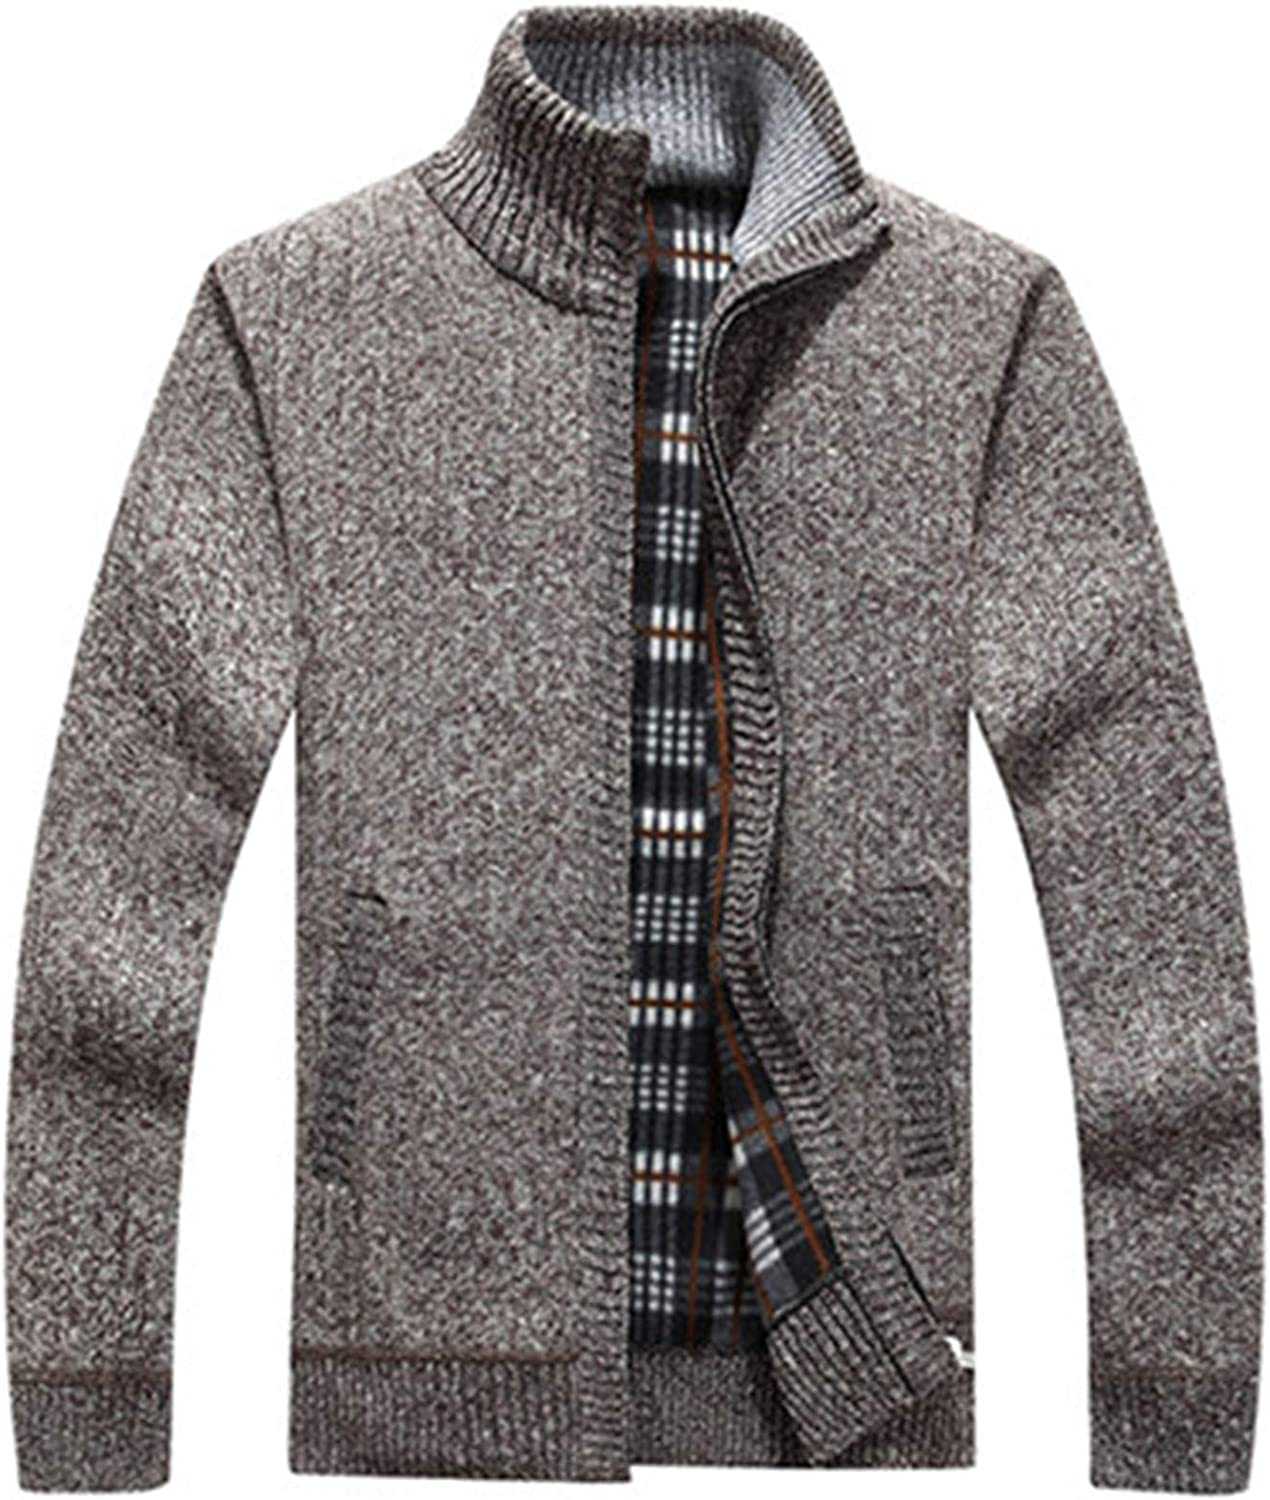 Thick Warm Fashion Sweater Cardigan for Men Slim Fit Jumpers Knitred Winters Clothes